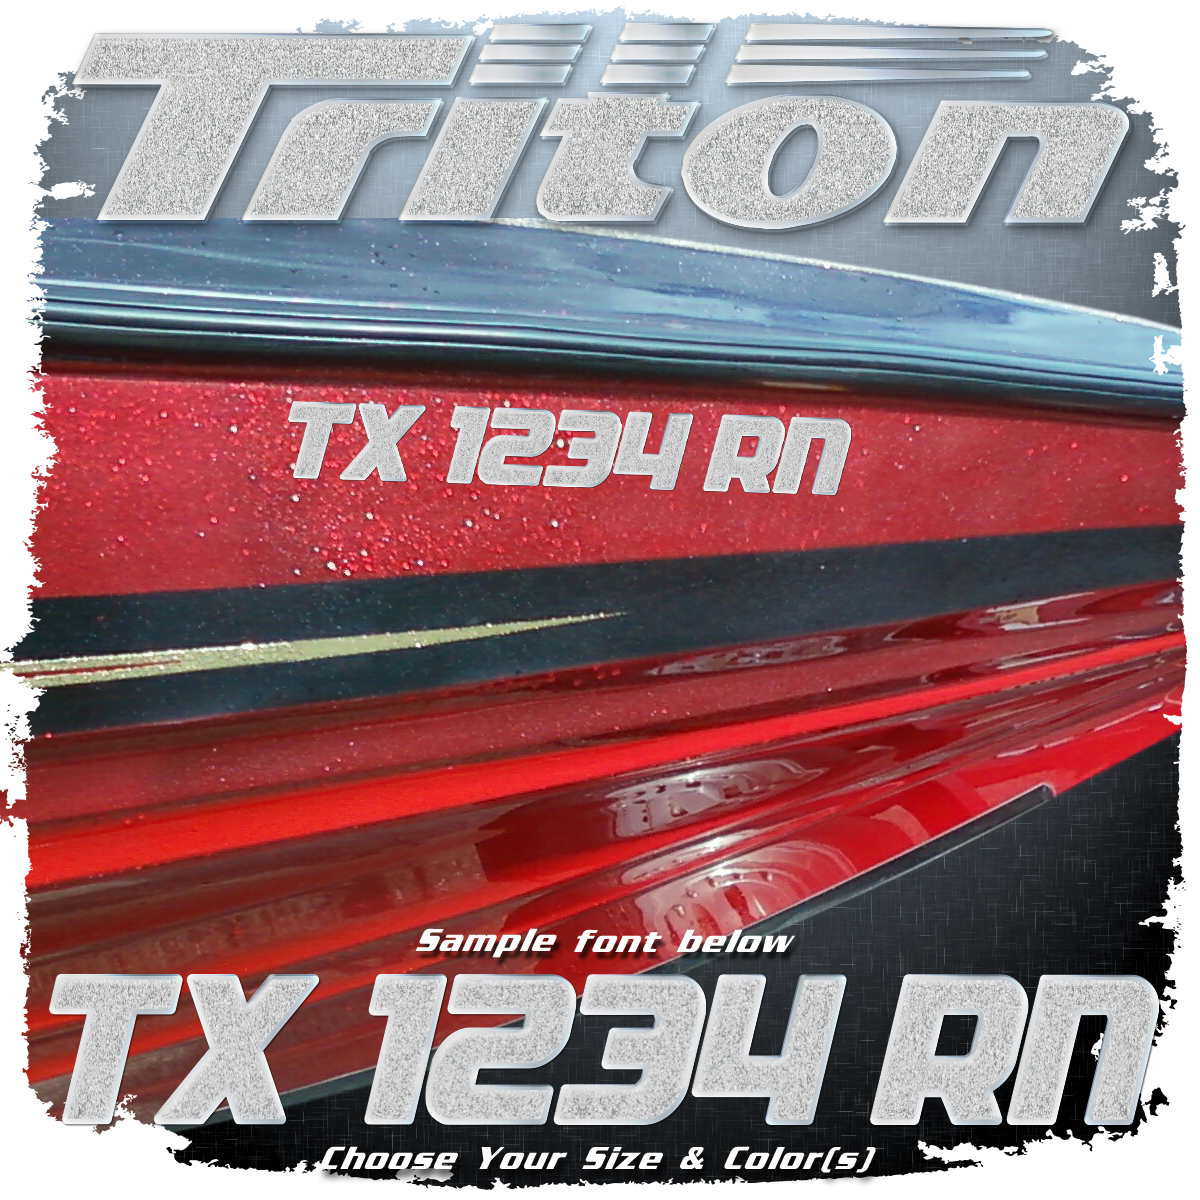 Triton Registration, Choose Your Colors (2 included)